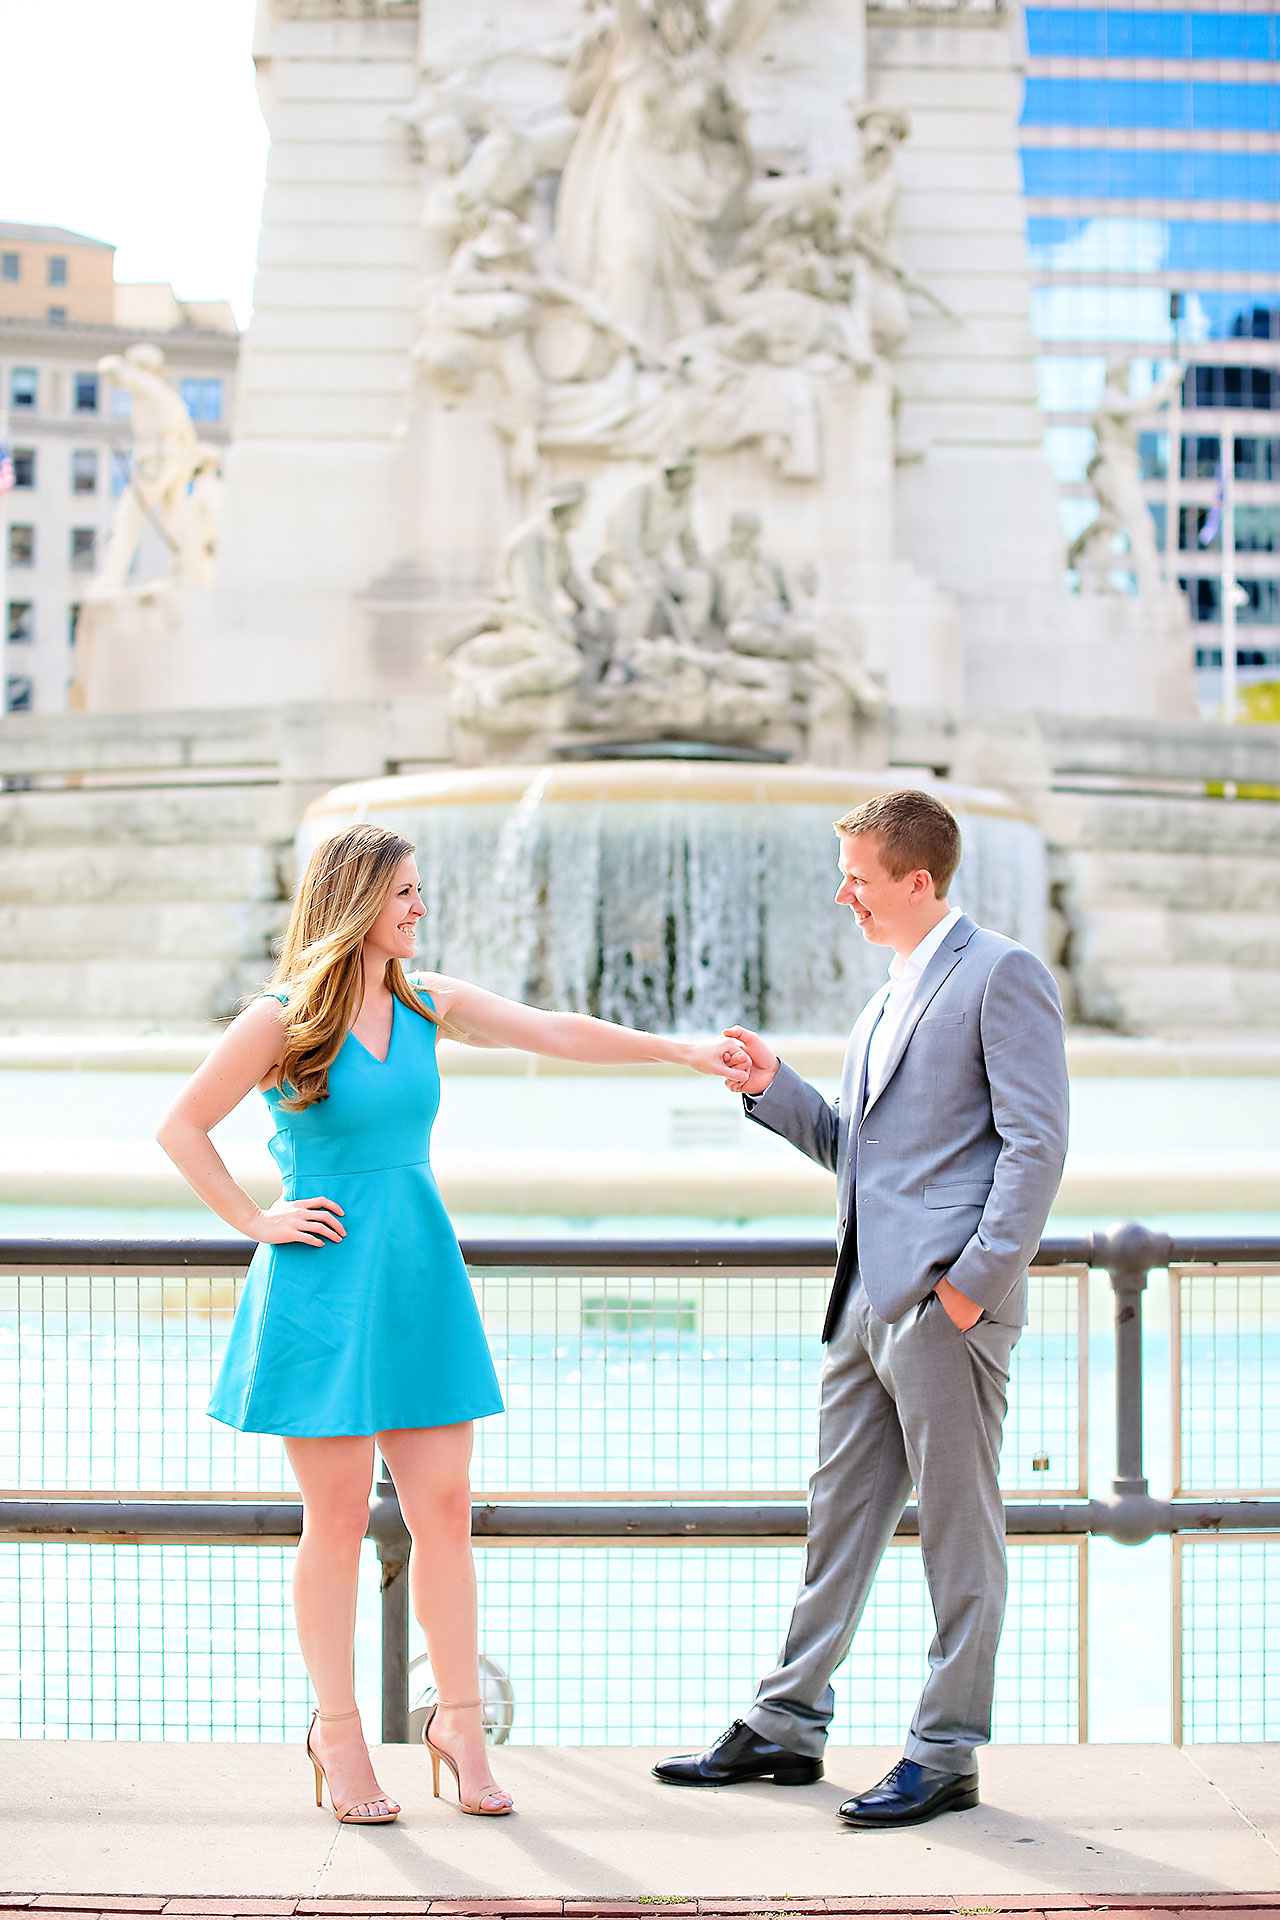 Chelsea Jeff Downtown Indy Engagement Session 017